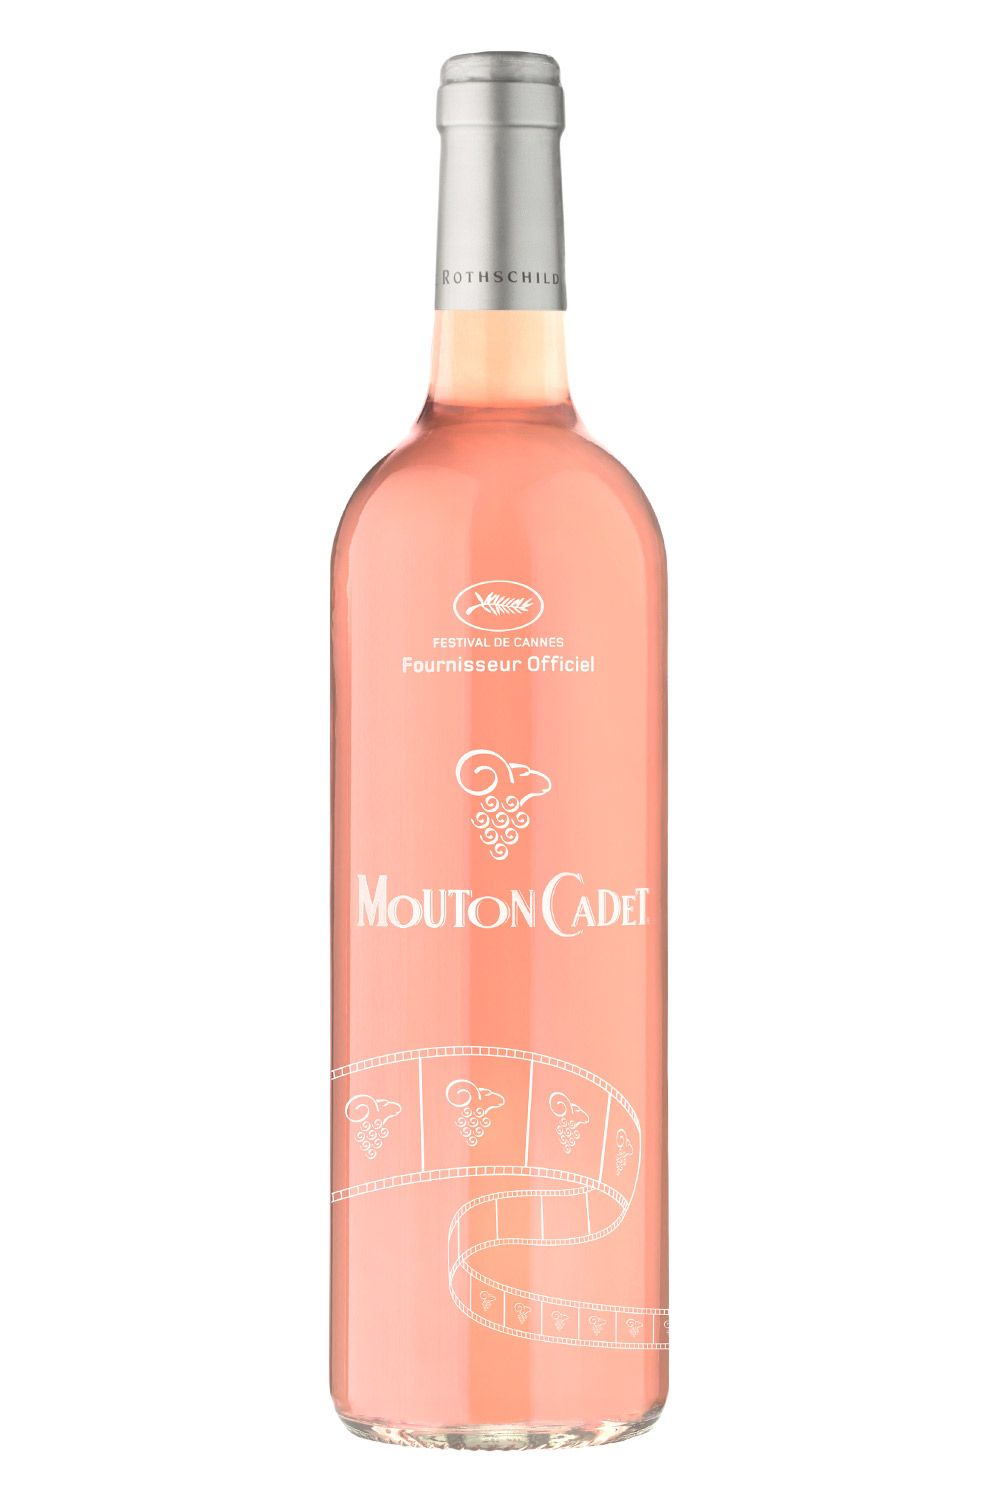 "<p>As the official wine of the Cannes Festival, this fruit-forward rosé features pink grapefruit and cherry notes, and has a nice citrus finish—perfect for patio/poolside/sun lounging. </p><p>$13, <a href=""http://www.moutoncadet.com/?post_type=gamme&p=1011&lang=en"" target=""_blank"">moutoncadet.com</a></p>"